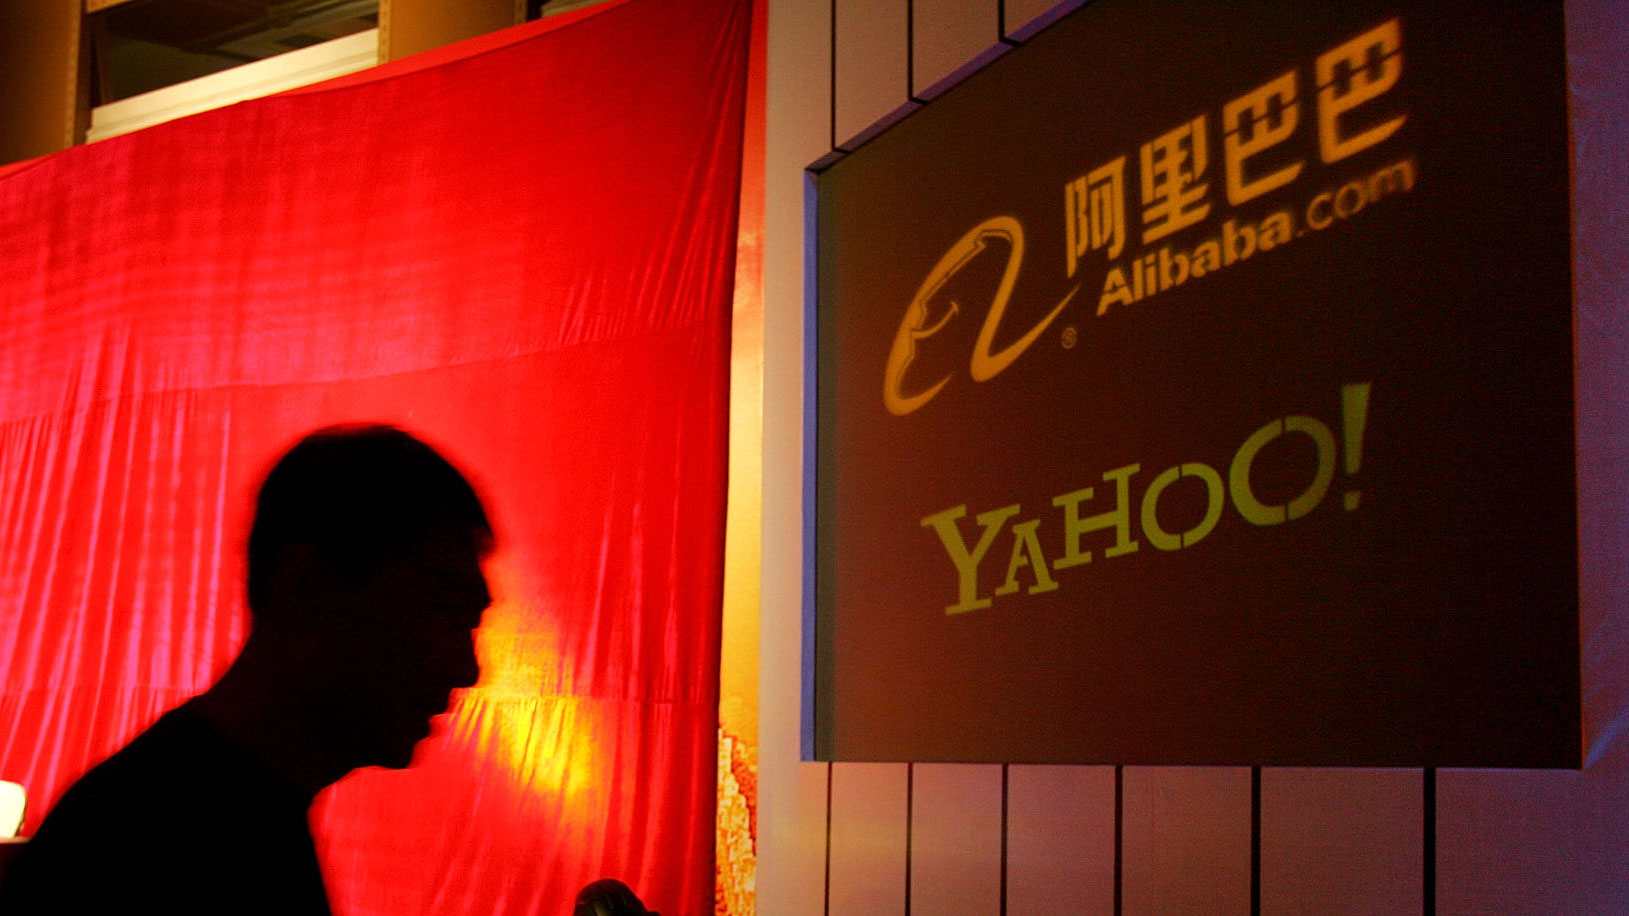 A Chinese man walks past a screen showing the Yahoo and Ali Baba.com logos moments before an Ali Baba and Yahoo joint press conference at the China World hotel in Beijing Thursday, Aug. 11, 2005. Yahoo Inc. announced Thursday it would pay US$1 billion (euro810 million) in cash to acquire a 40 percent stake in the Chinese e-commerce firm Alibaba.com. The agreement makes Yahoo the largest strategic investor in Alibaba, and is the biggest deal yet in a flurry of investments in China by foreign Internet companies eager for a share of a market with more than 100 million people online. (AP Photo/Elizabeth Dalziel)